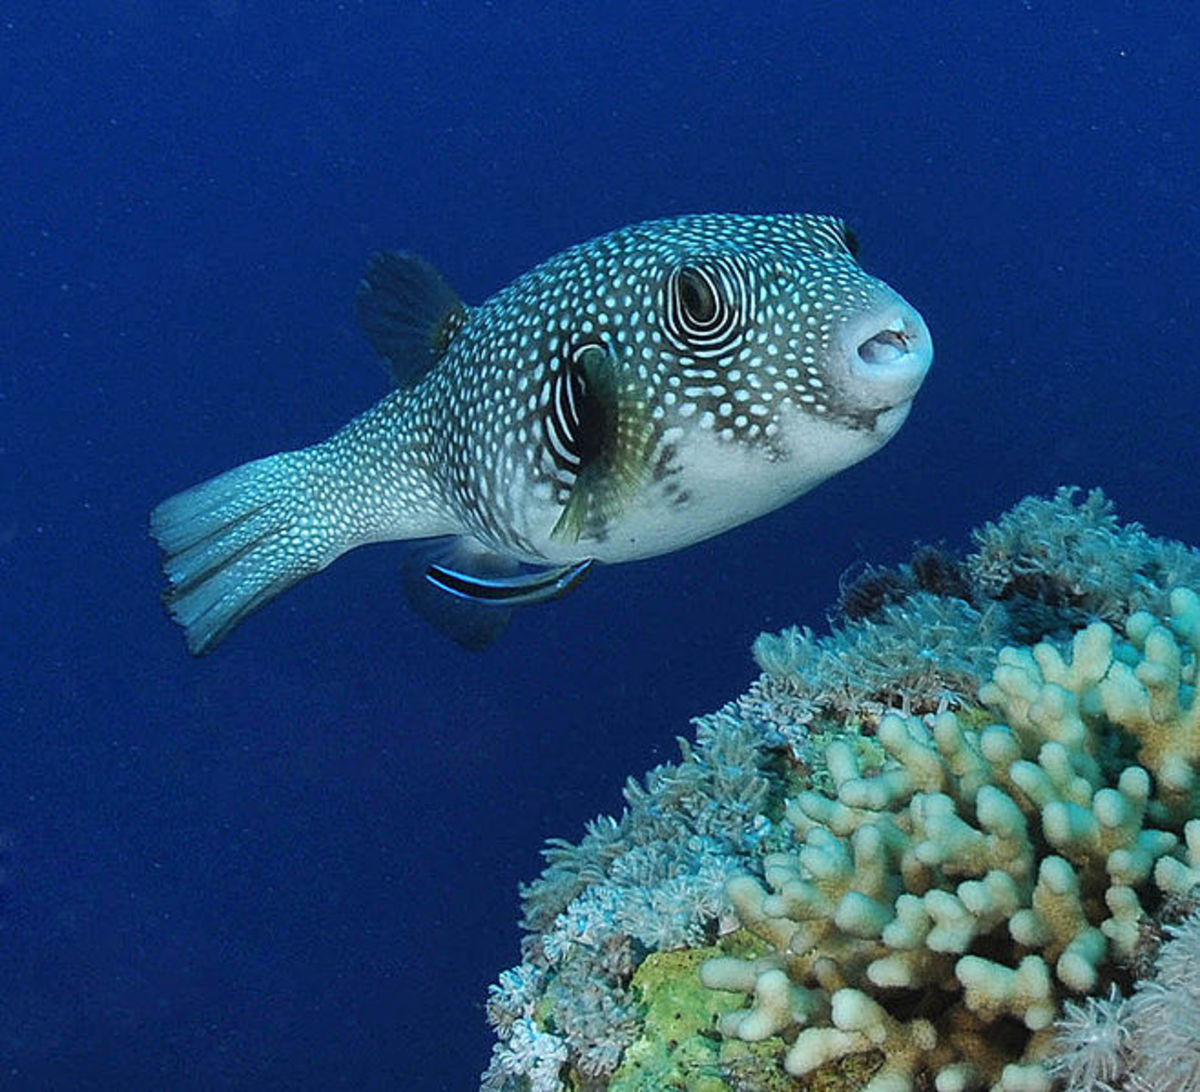 Facts about Amazing Puffer Fish - A Marine Wonder